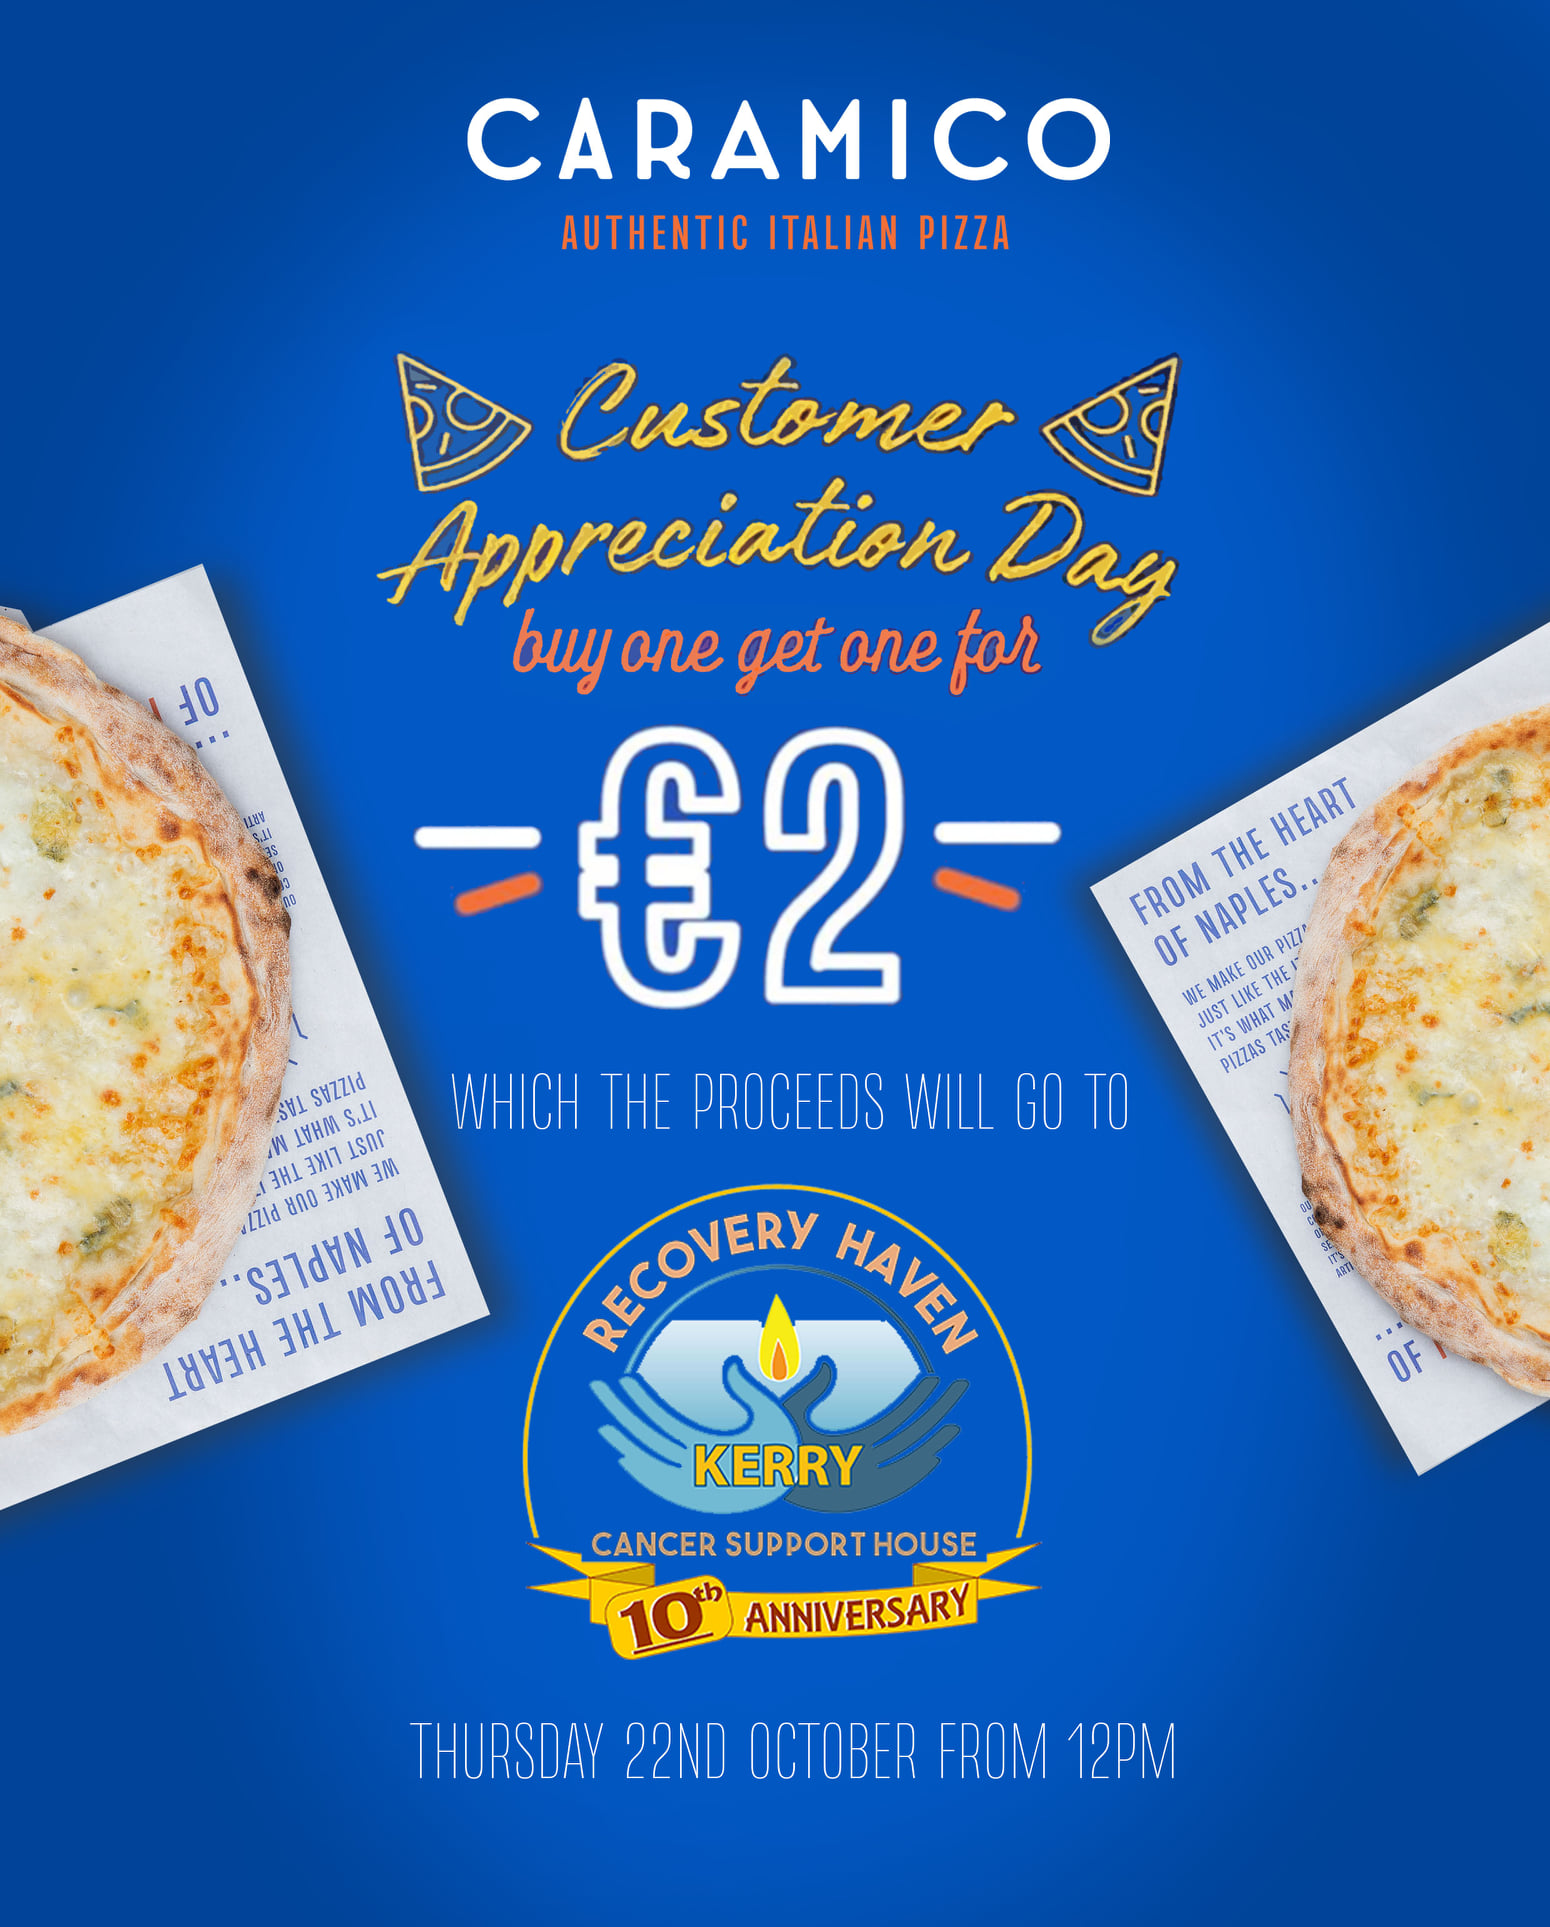 Buy one Pizza get second one for 2 euro